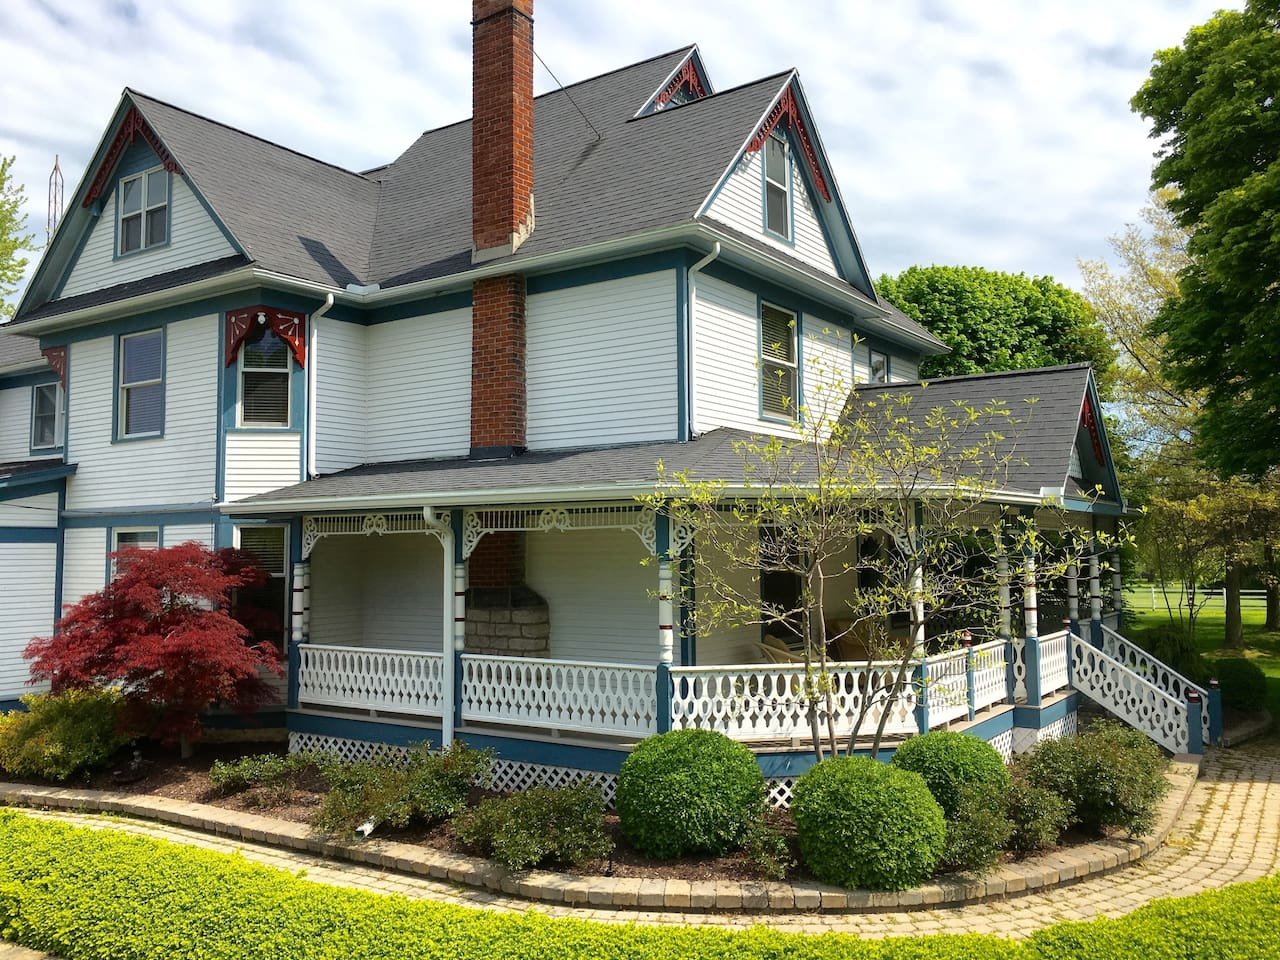 The front view of the Dellwood Estate with its wraparound porch.